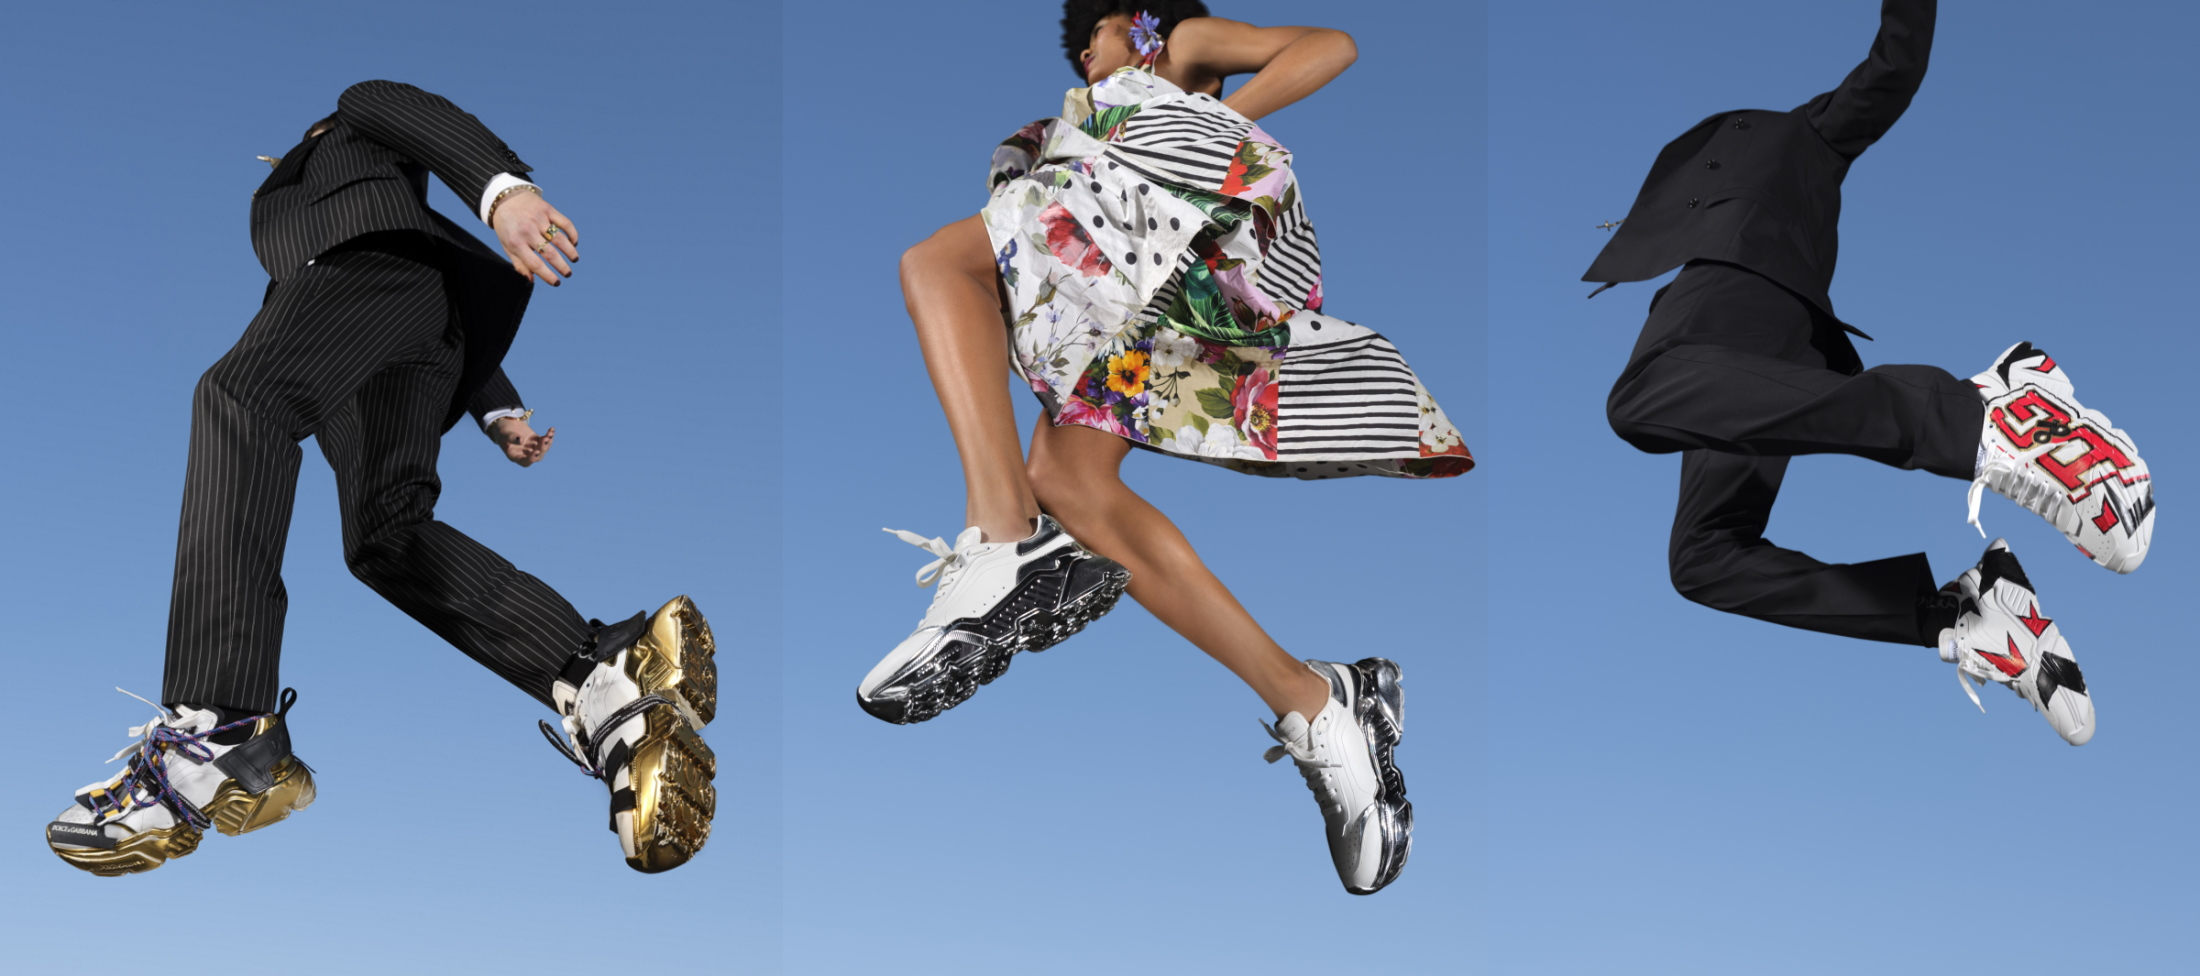 Dolce & Gabbana Updates Its Day Master Sneakers